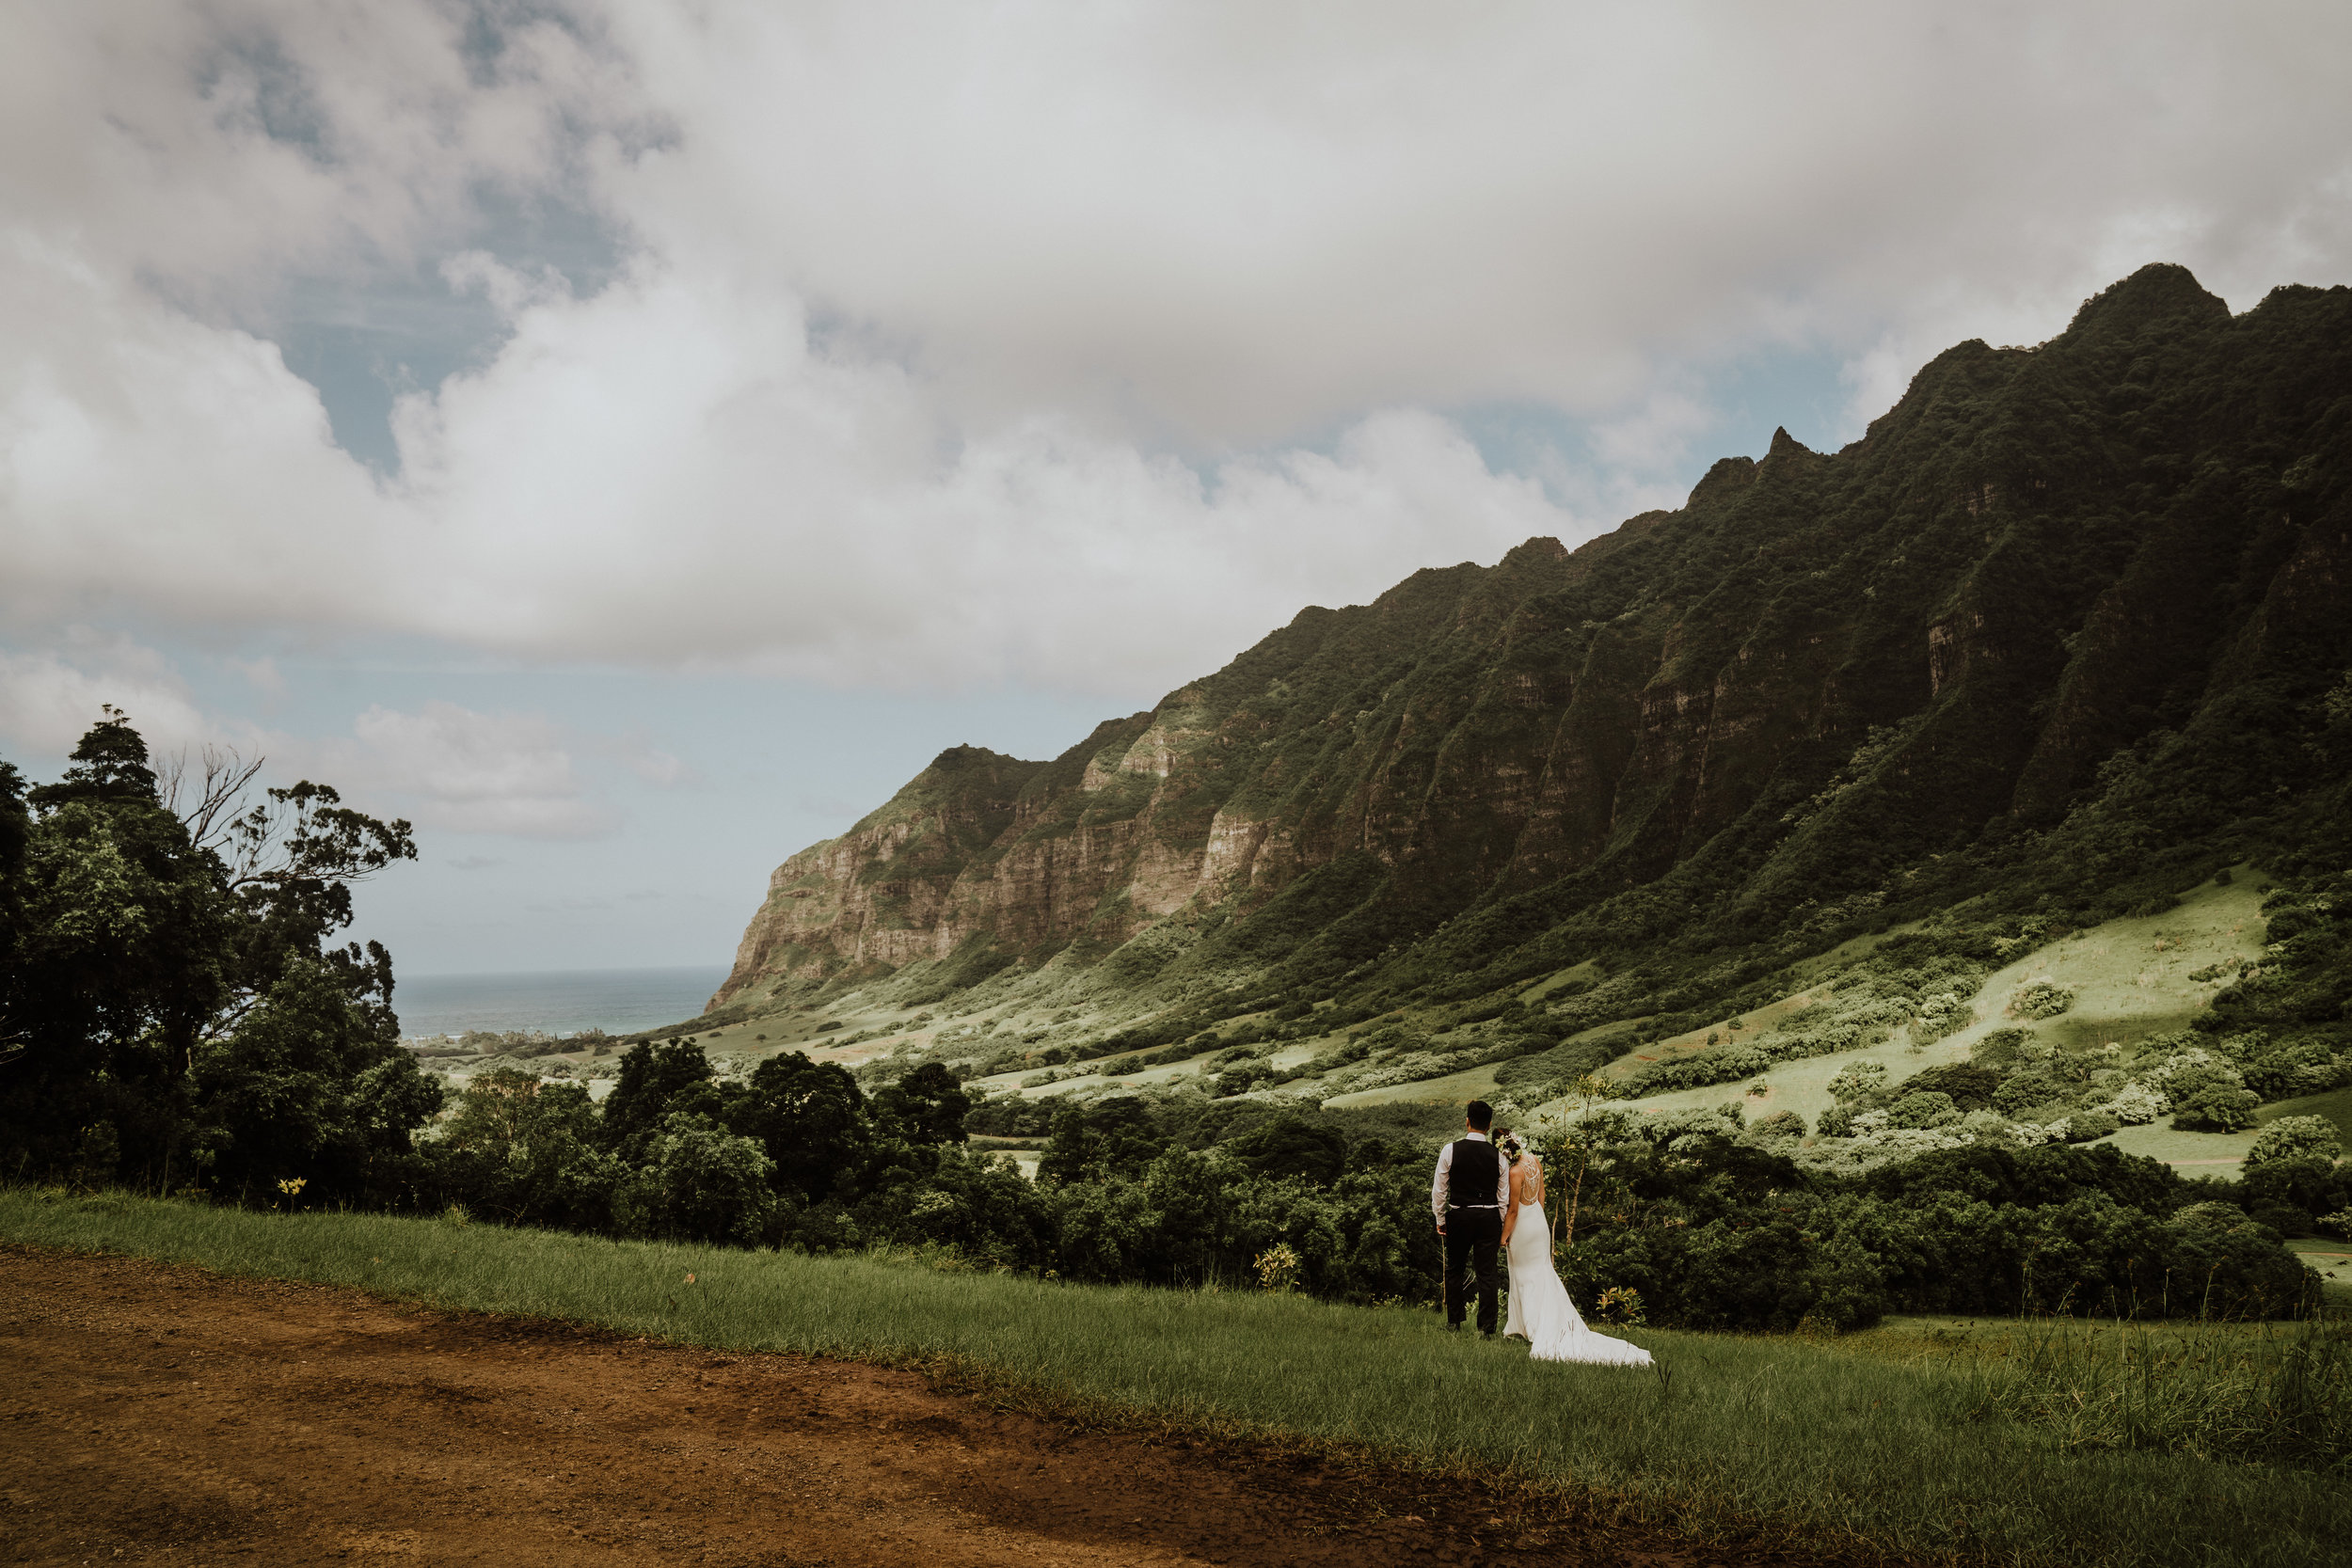 kualoa_ranch_wedding.jpg